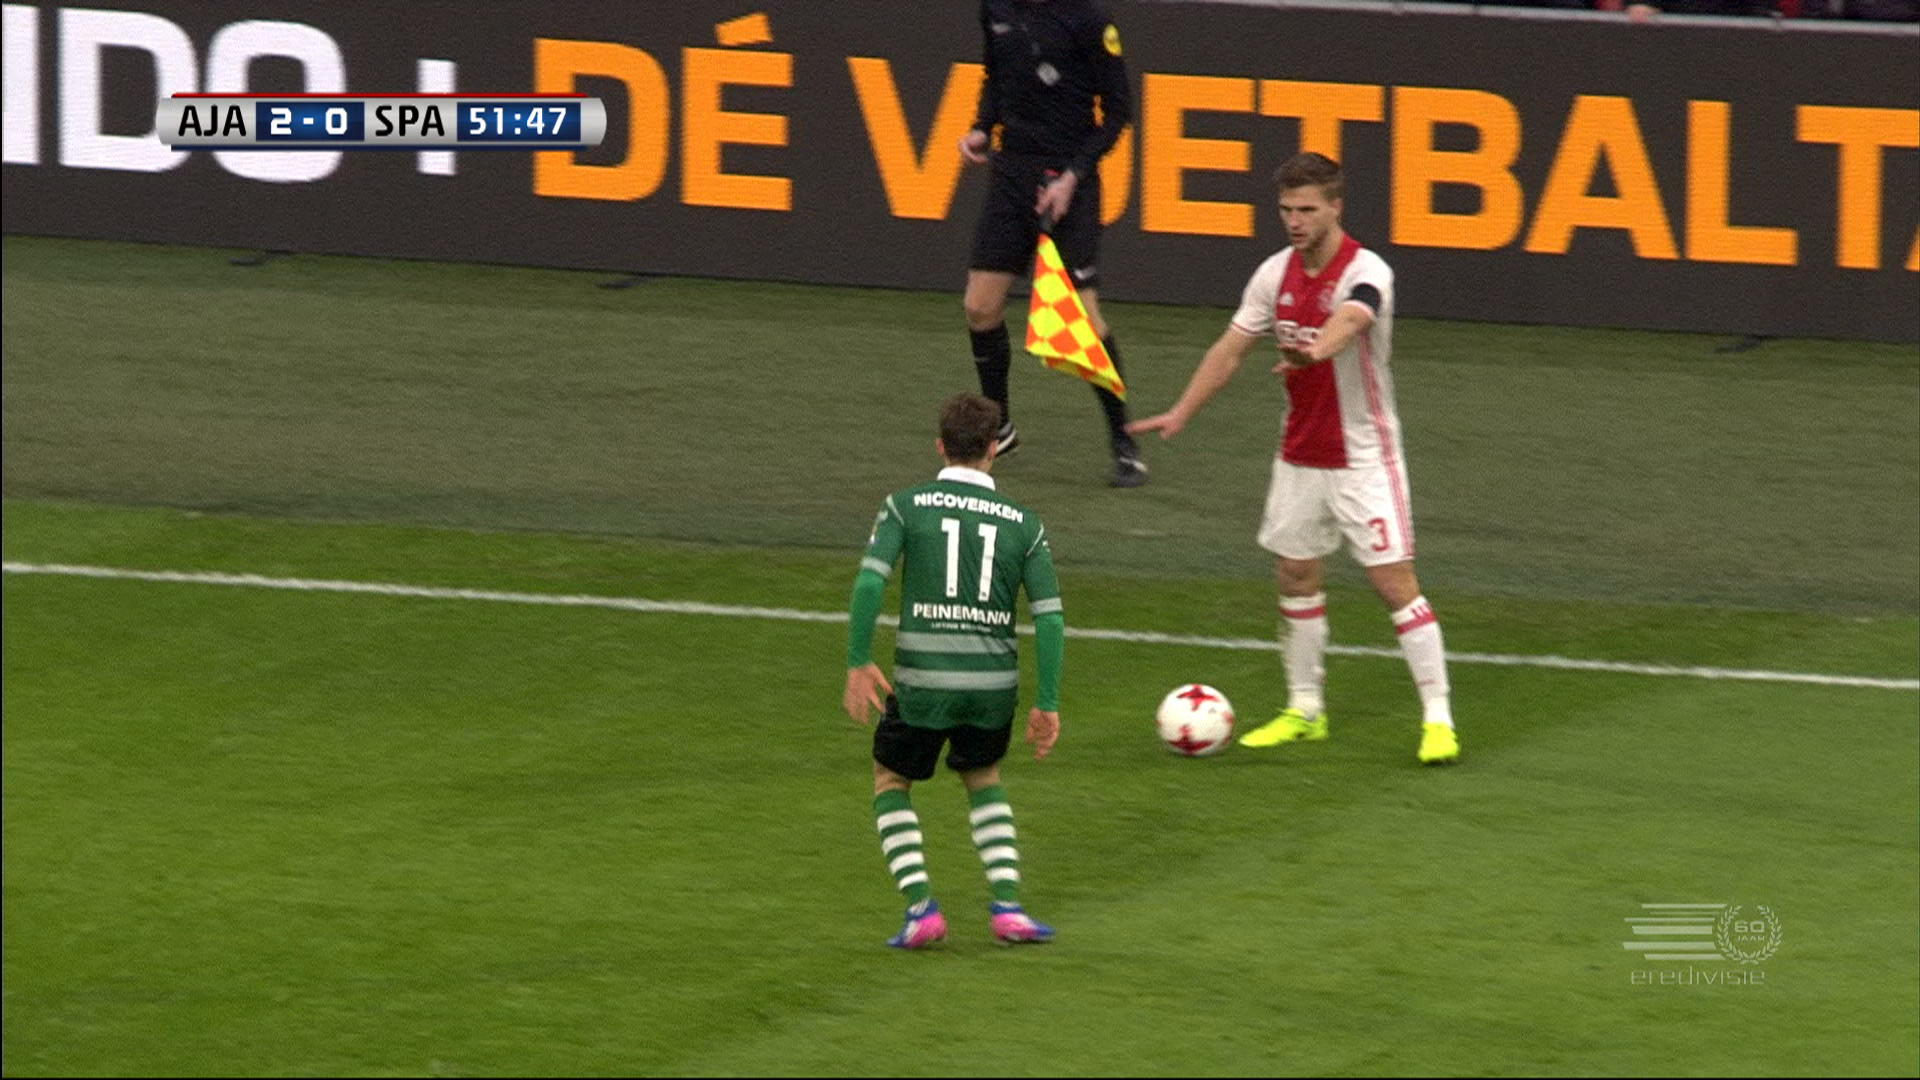 The Ugly unsporting gesture of a player from Ajax unworthy to social networks